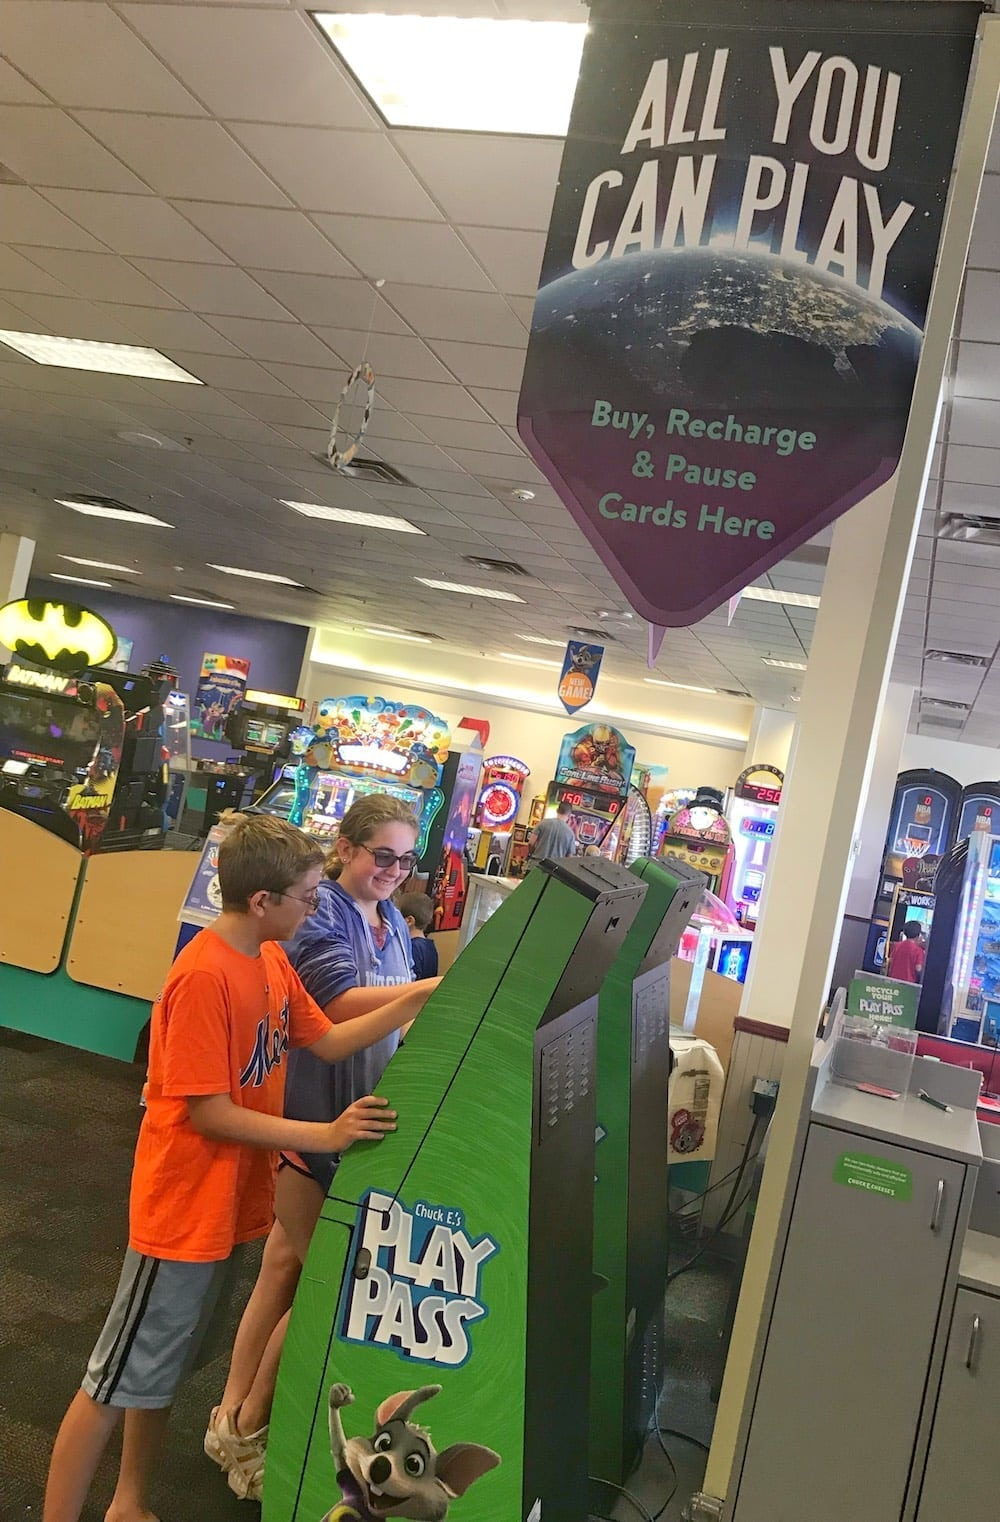 Chuck E Cheese's All You Can Play